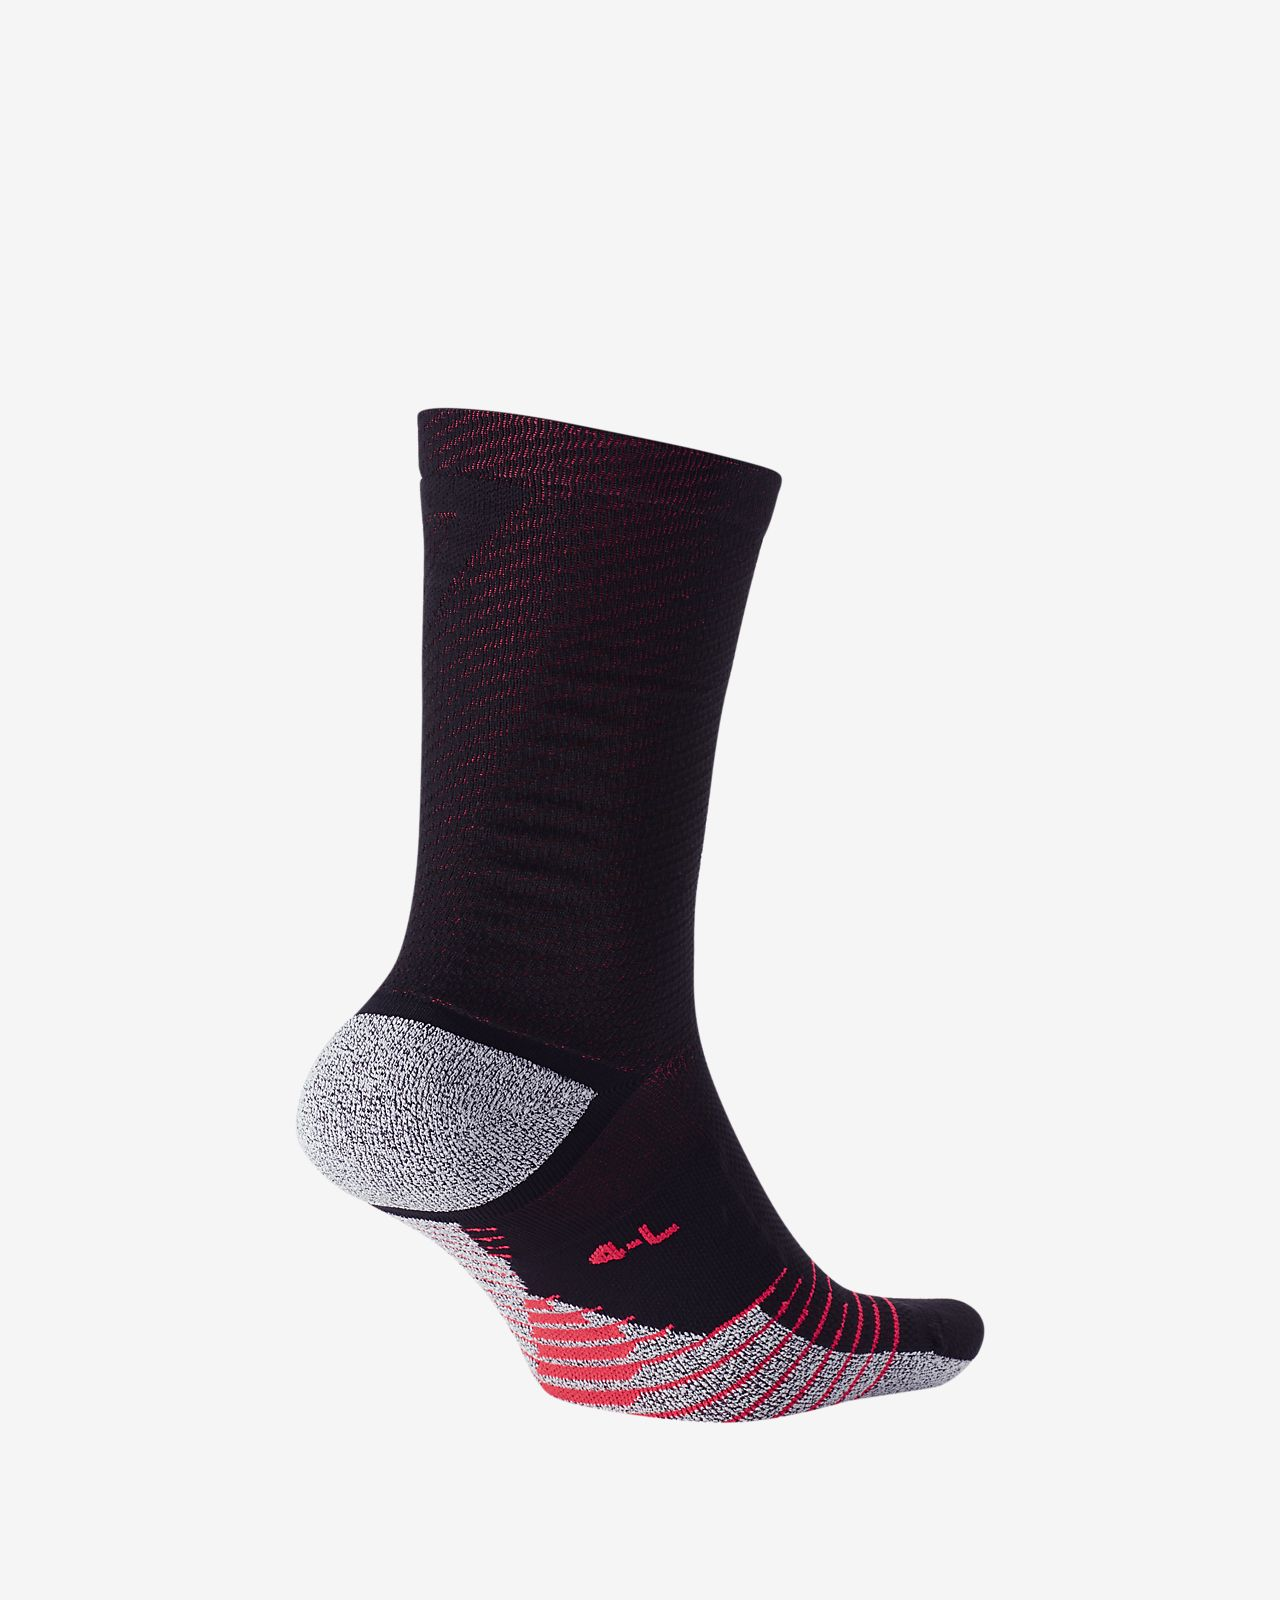 NikeGrip CR7 Graphic Crew Football Socks